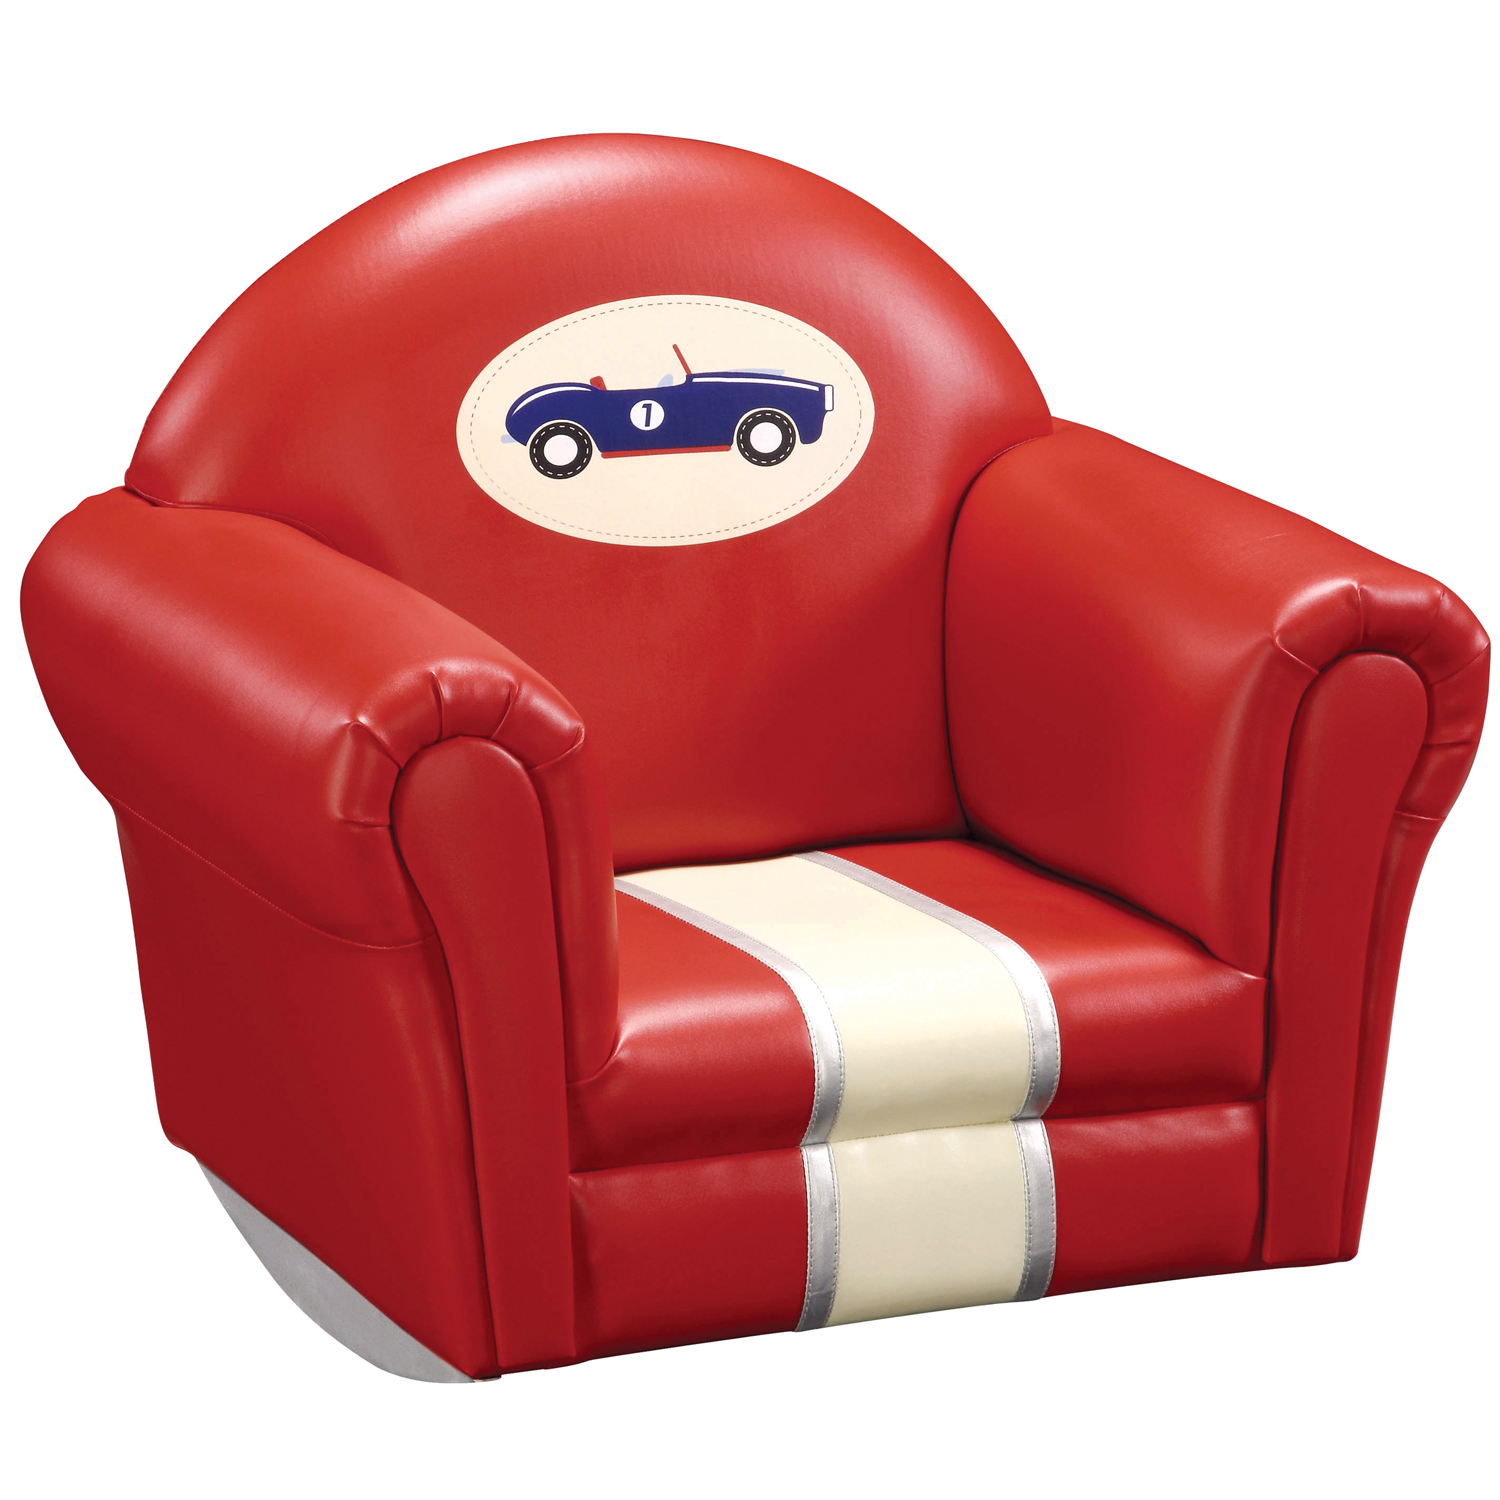 Guidecraft Retro Racers Upholstered Rocker at Sears.com